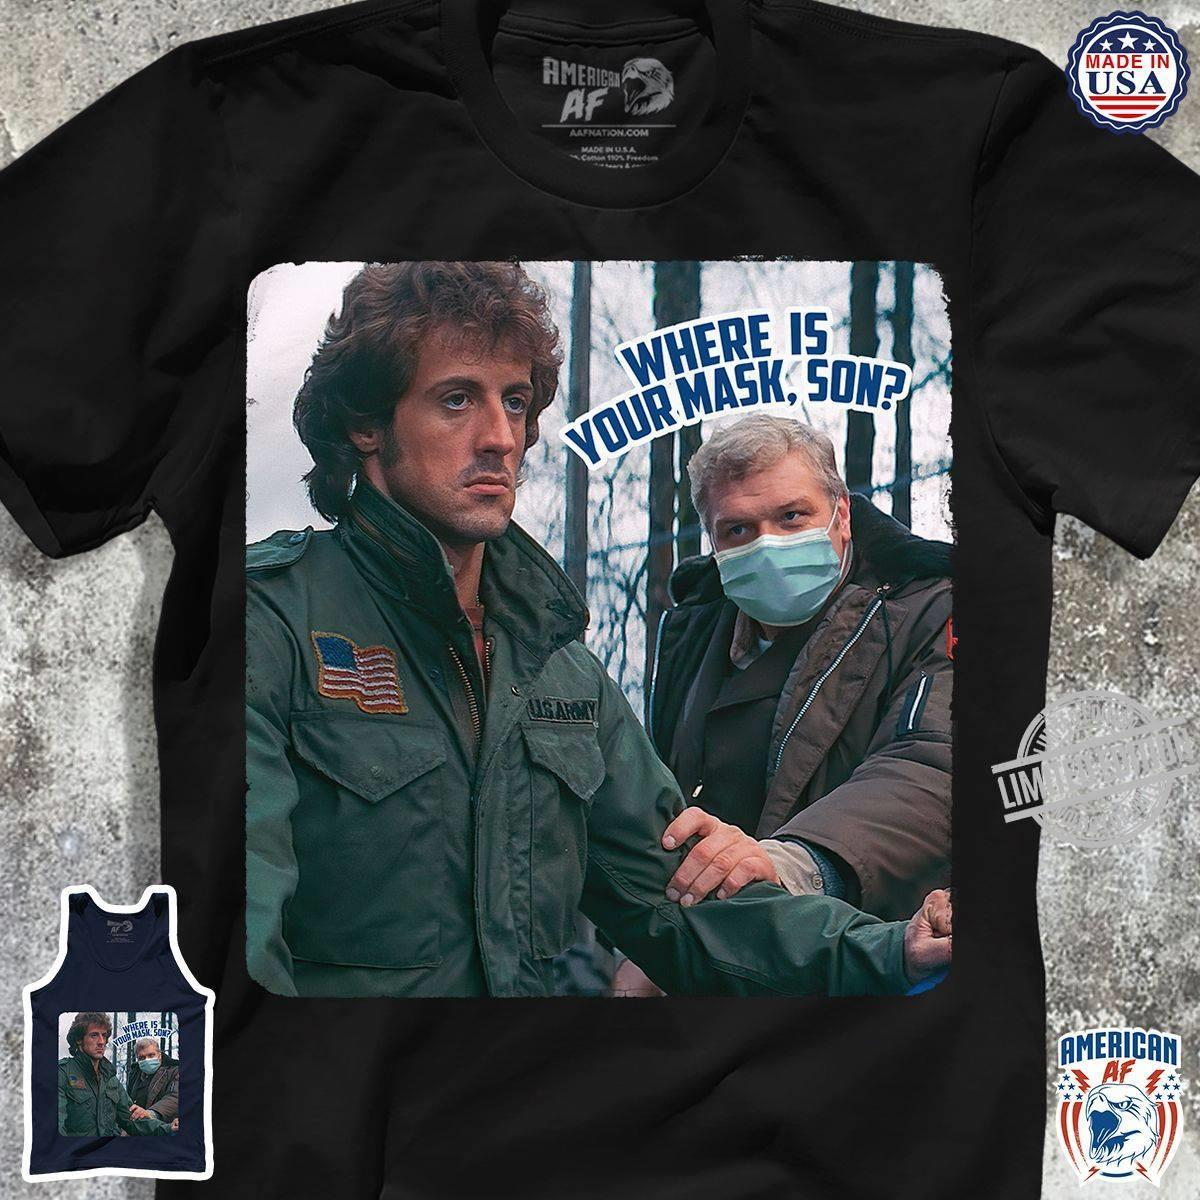 Where Is Work Mask Son Shirt